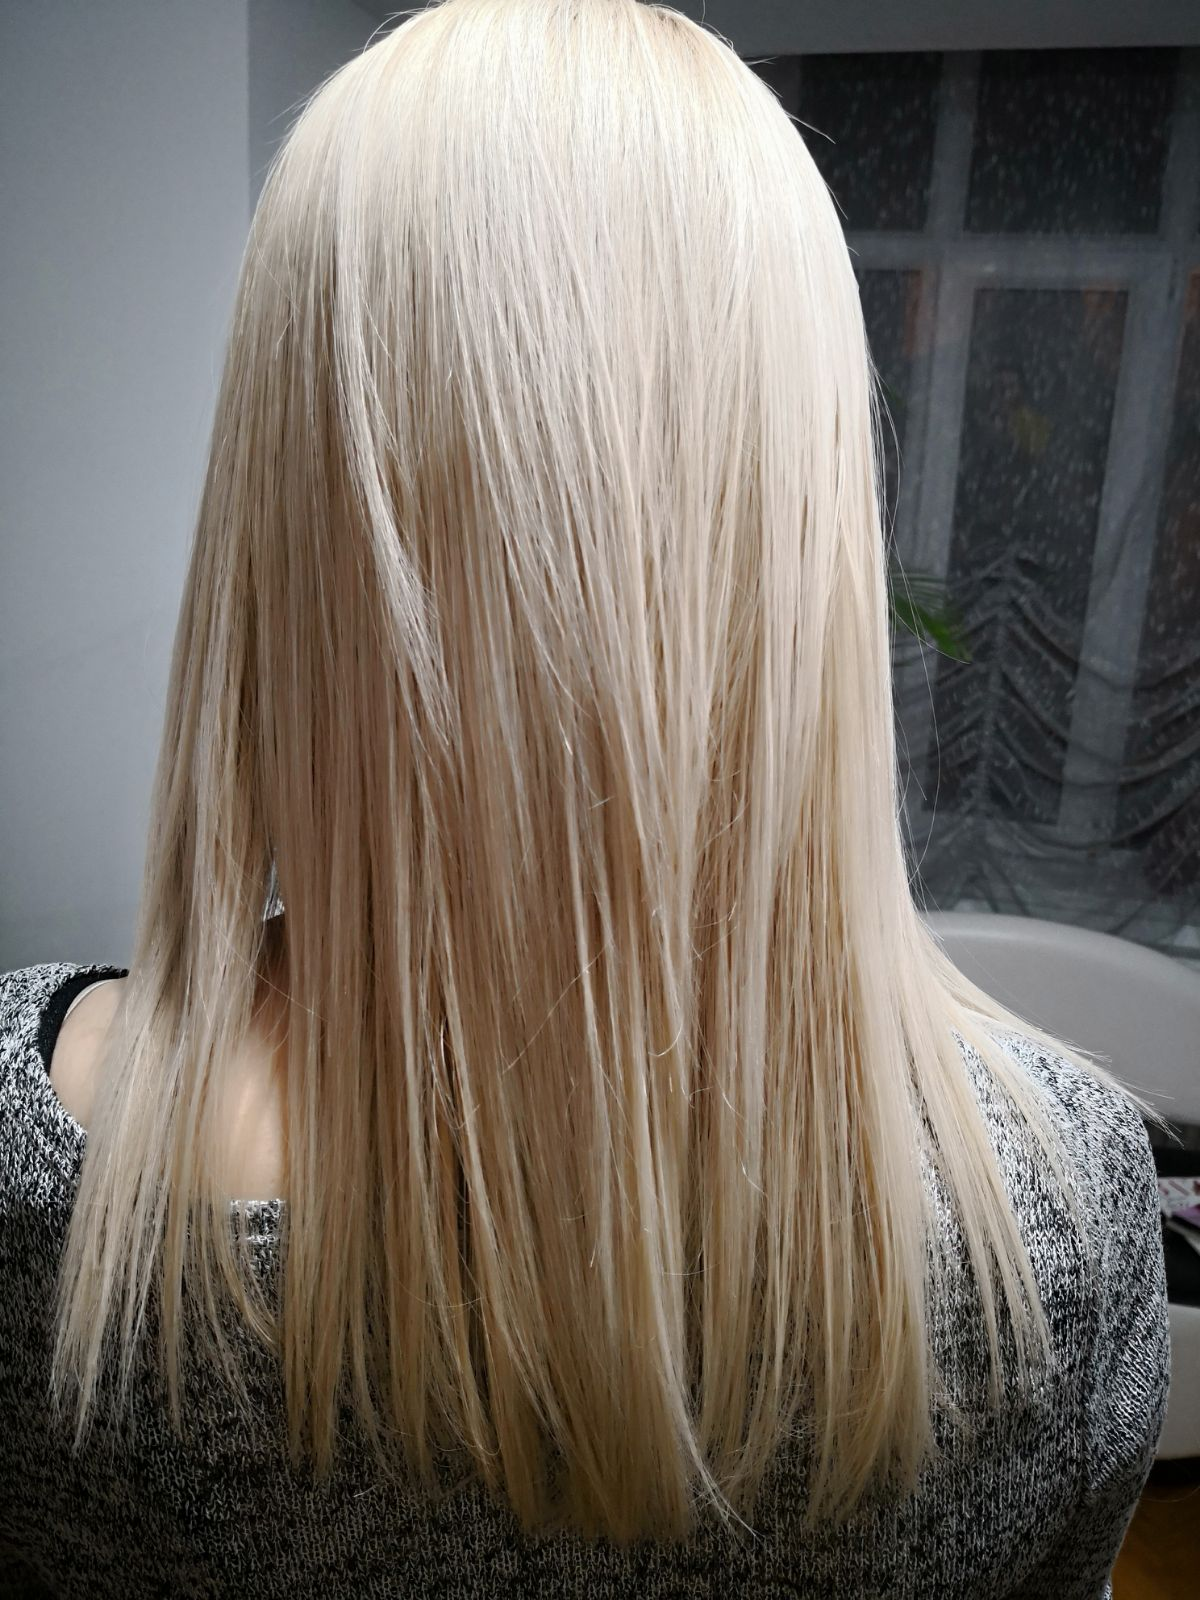 blond hair ksister's salon